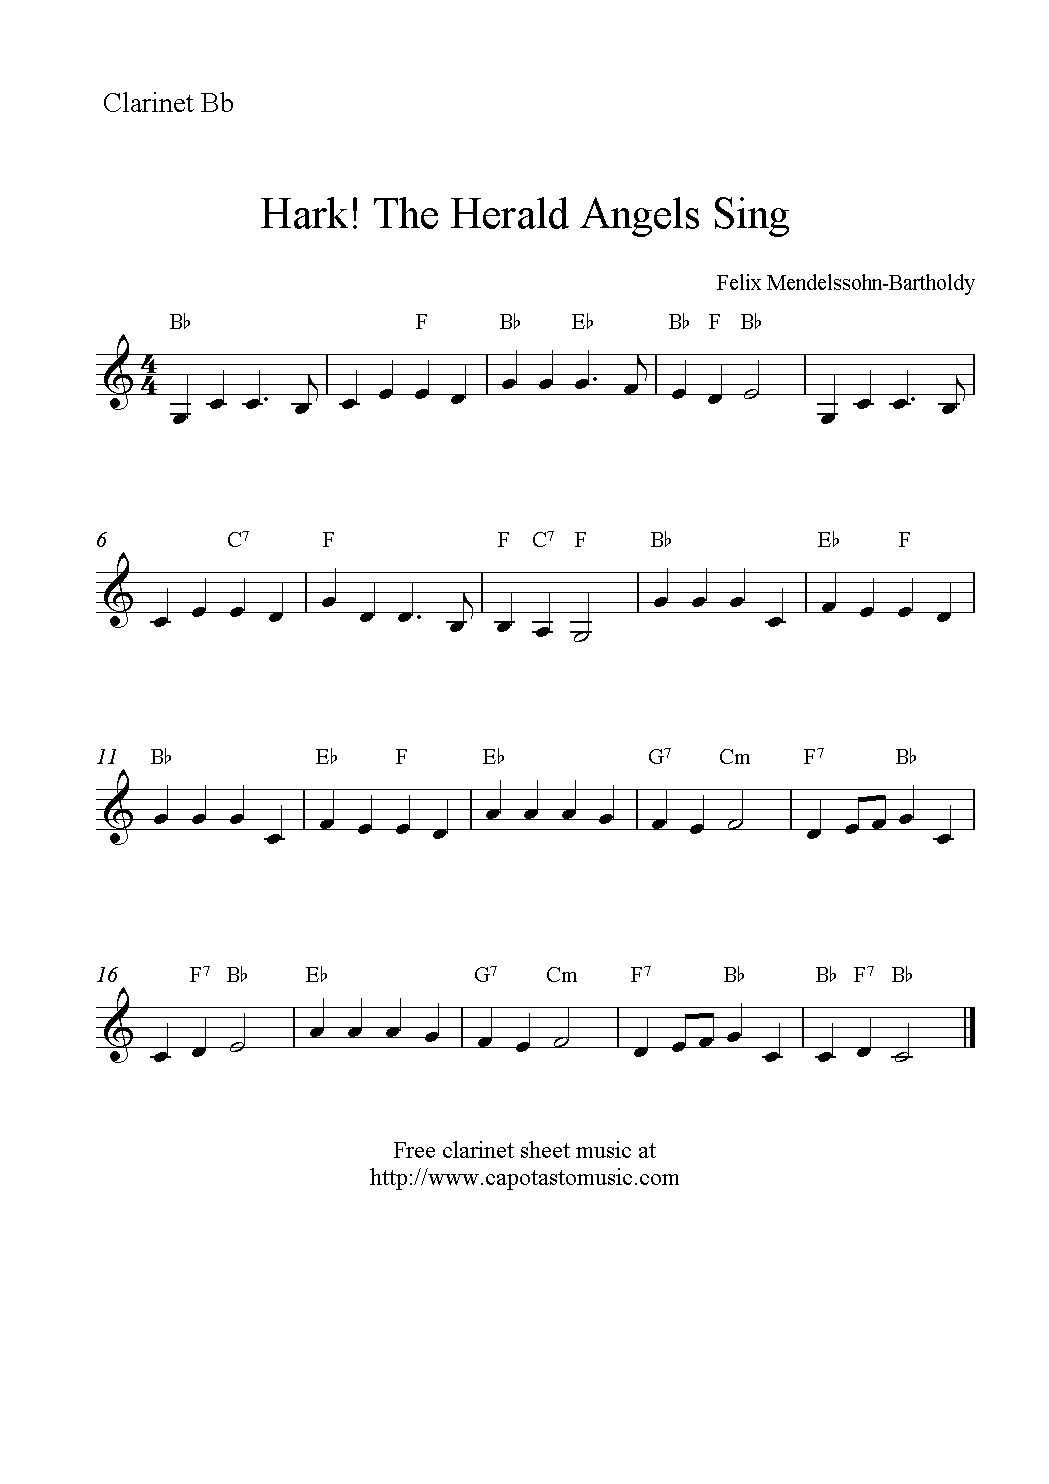 Hark! The Herald Angels Sing, Free Christmas Clarinet Sheet Music Notes - Free Printable Christmas Songs For Clarinet